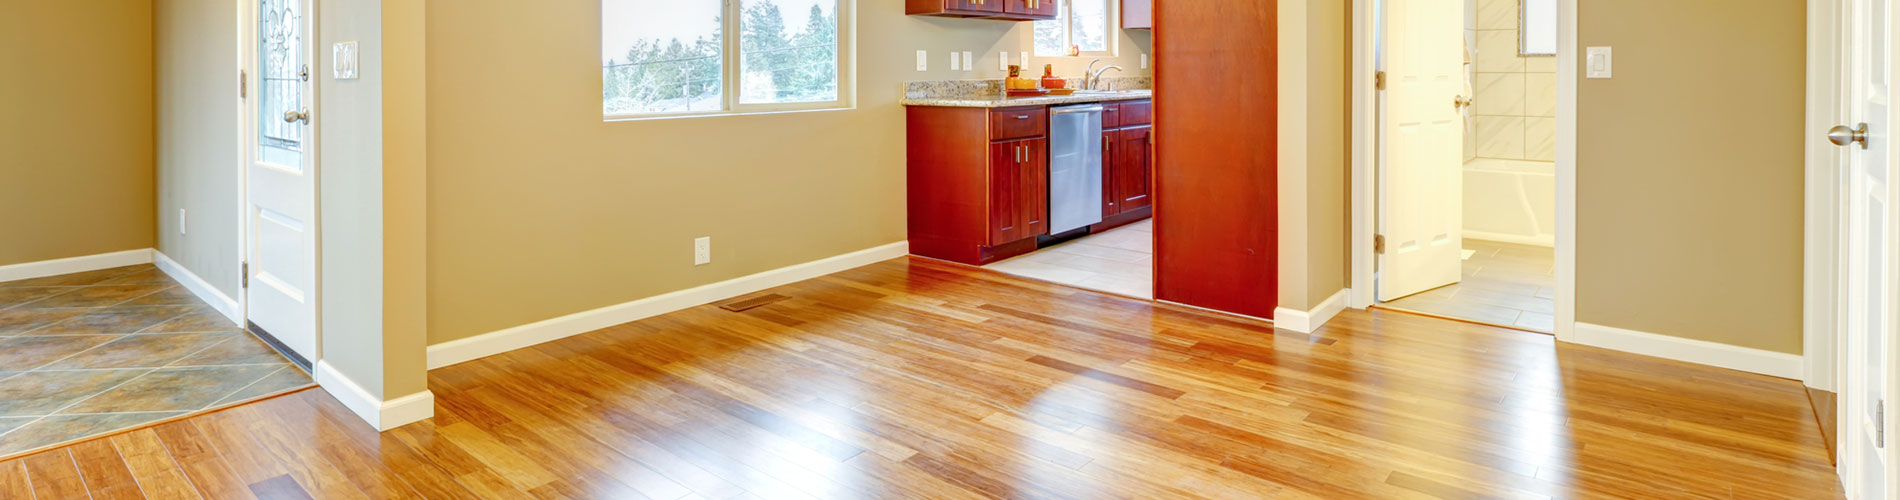 Laminate Flooring in Huntington NY, Bay Shore NY, Sayville